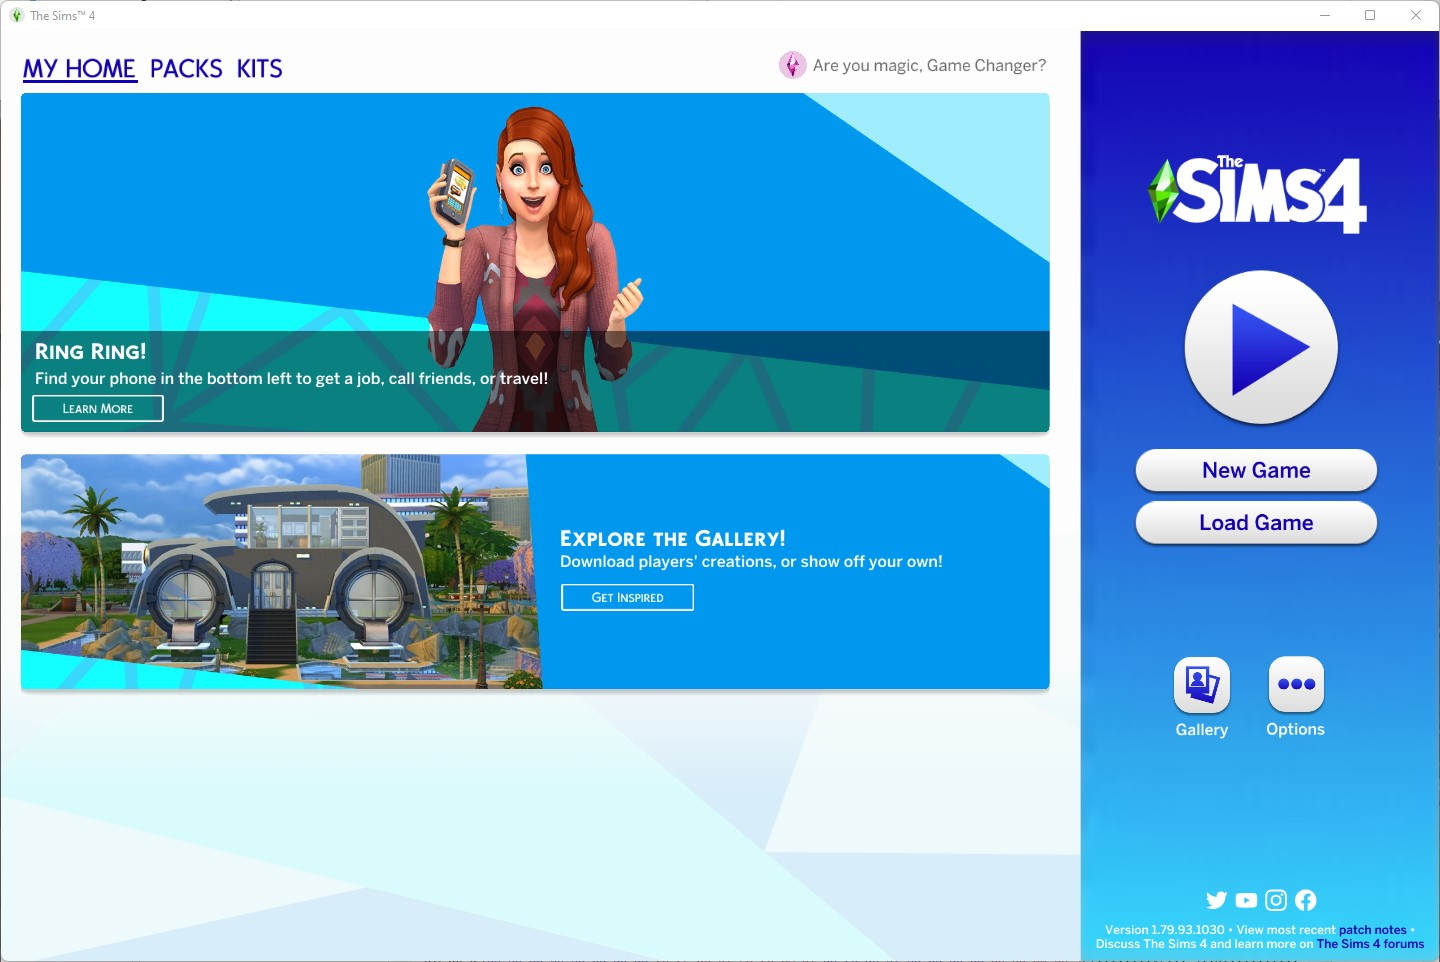 The Sims 4 1.79.93.1030 - Spa Day Refresh - Title Screen - September 7th, 2021